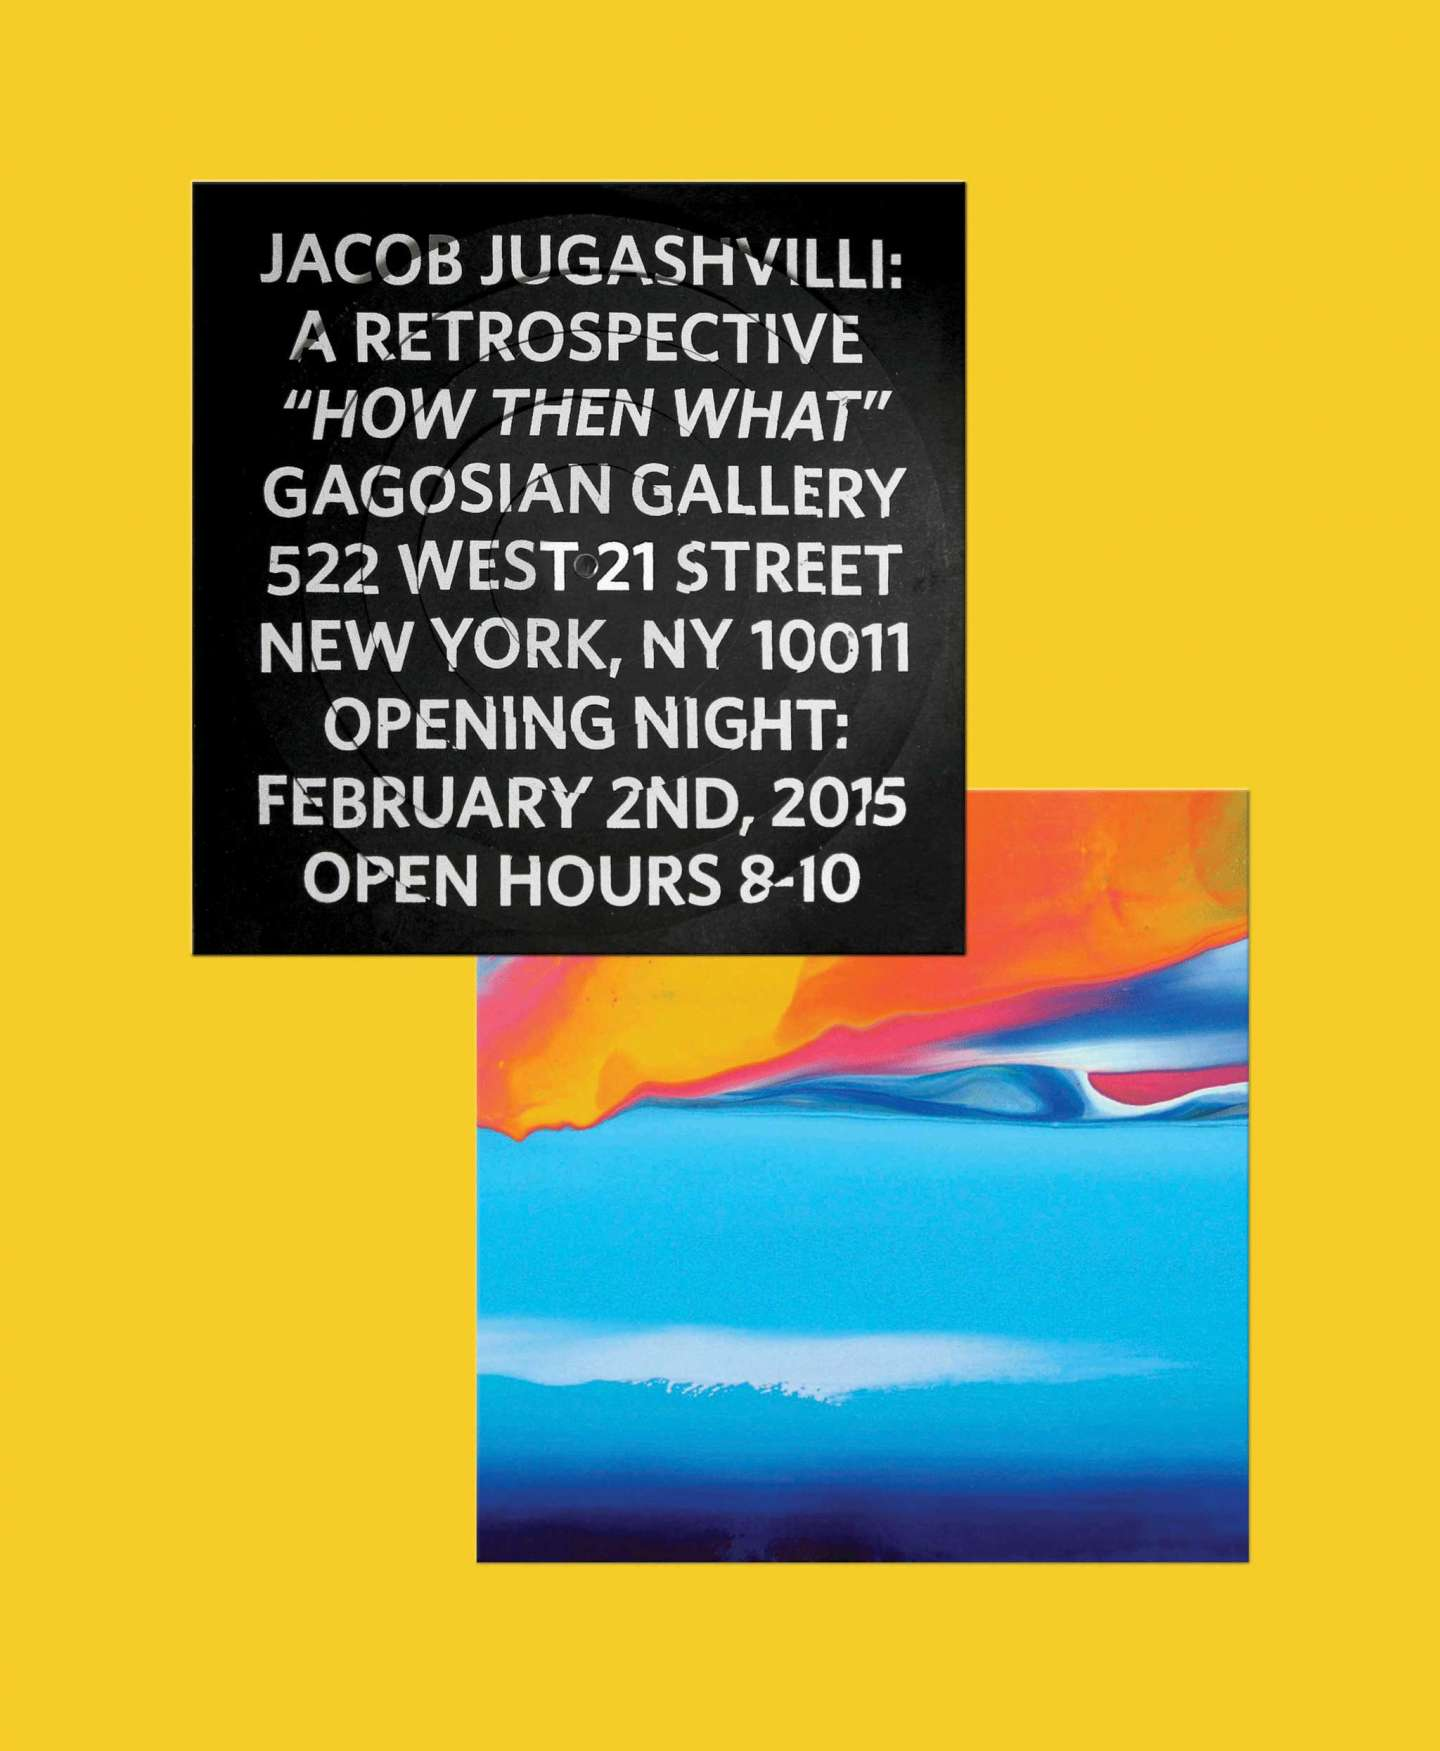 Jacob jugashvilli a retrospective by viktoriya tsoy sva design jacob jugashvilli is an artist that believes in and practices a philosophy of how before the what his artwork is born out of process rather than out of stopboris Choice Image